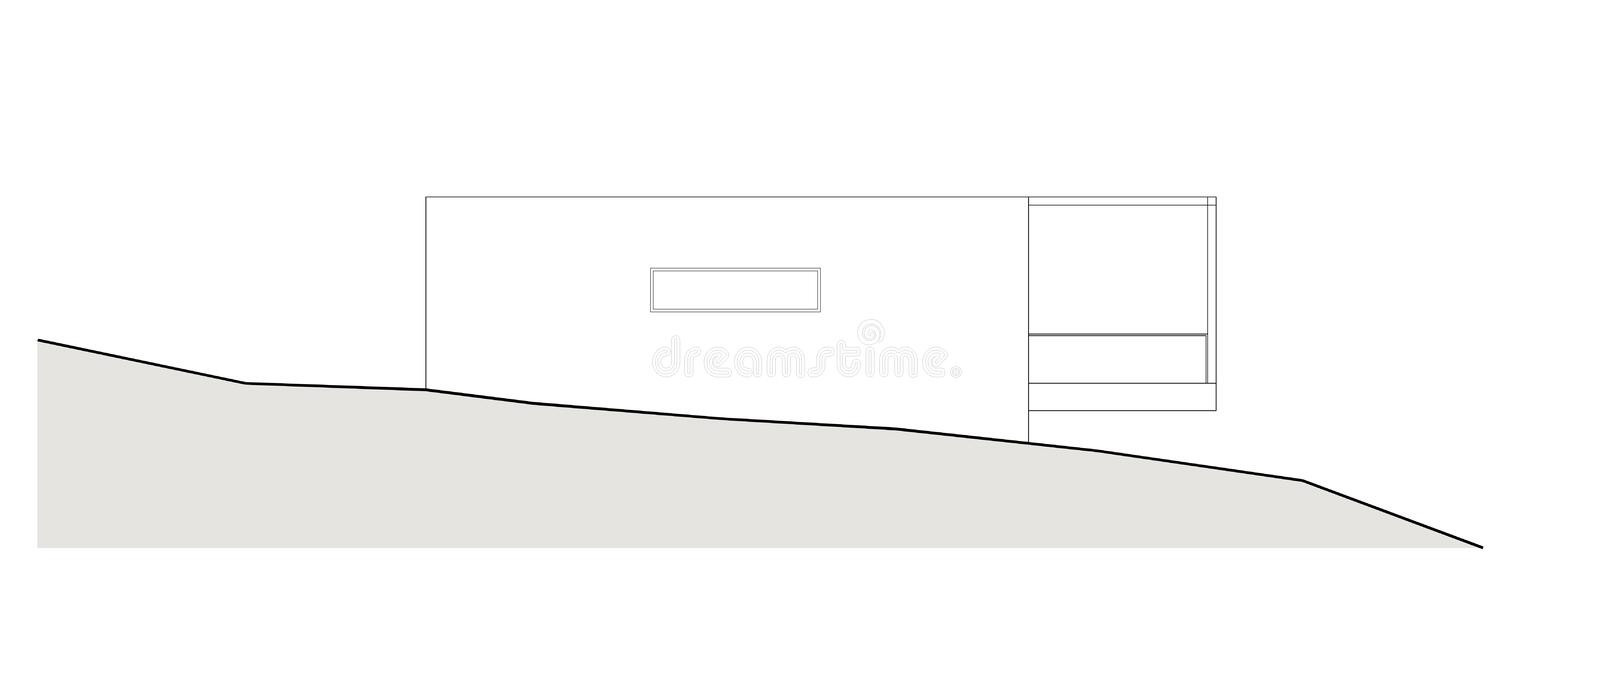 Project of the single family house. Drawing: facade of the single family house royalty free illustration